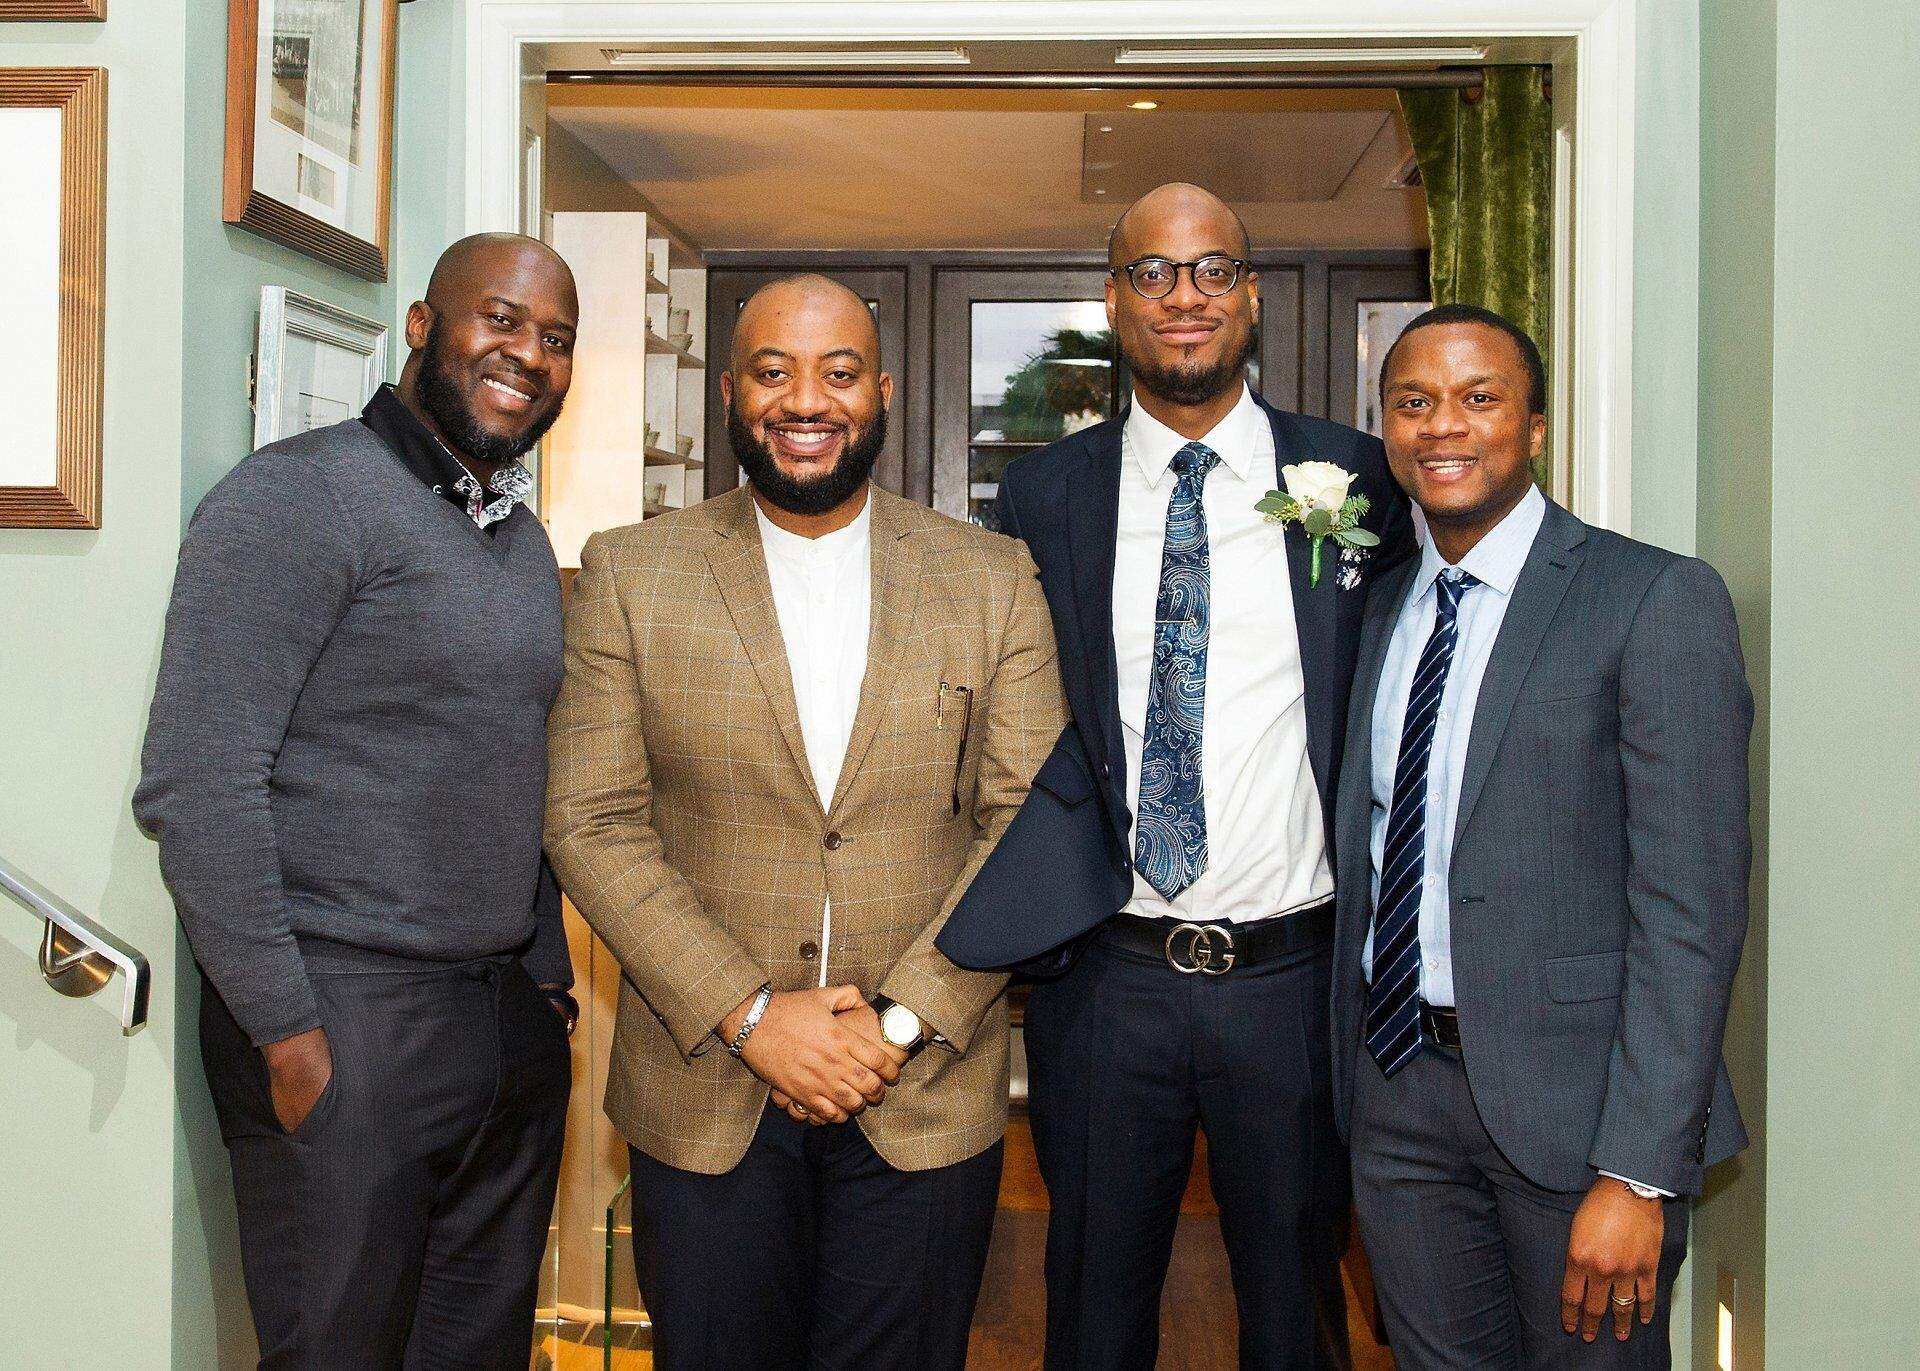 groom and his friends at dorset square hotel